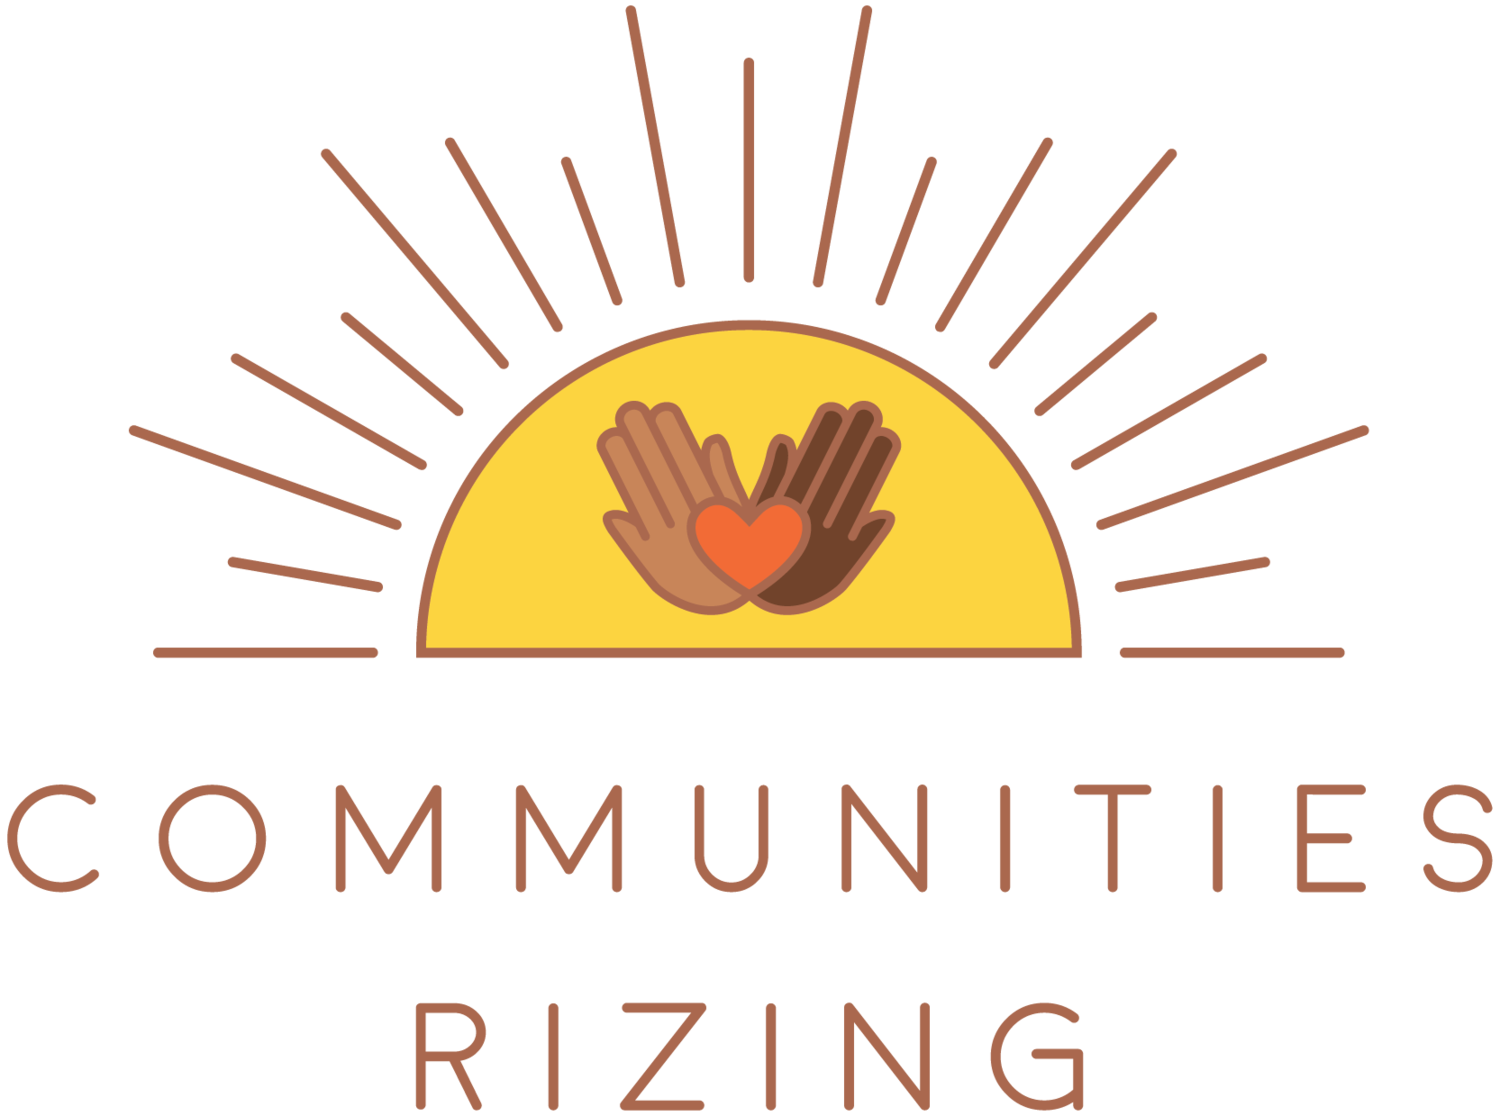 Communities Rizing